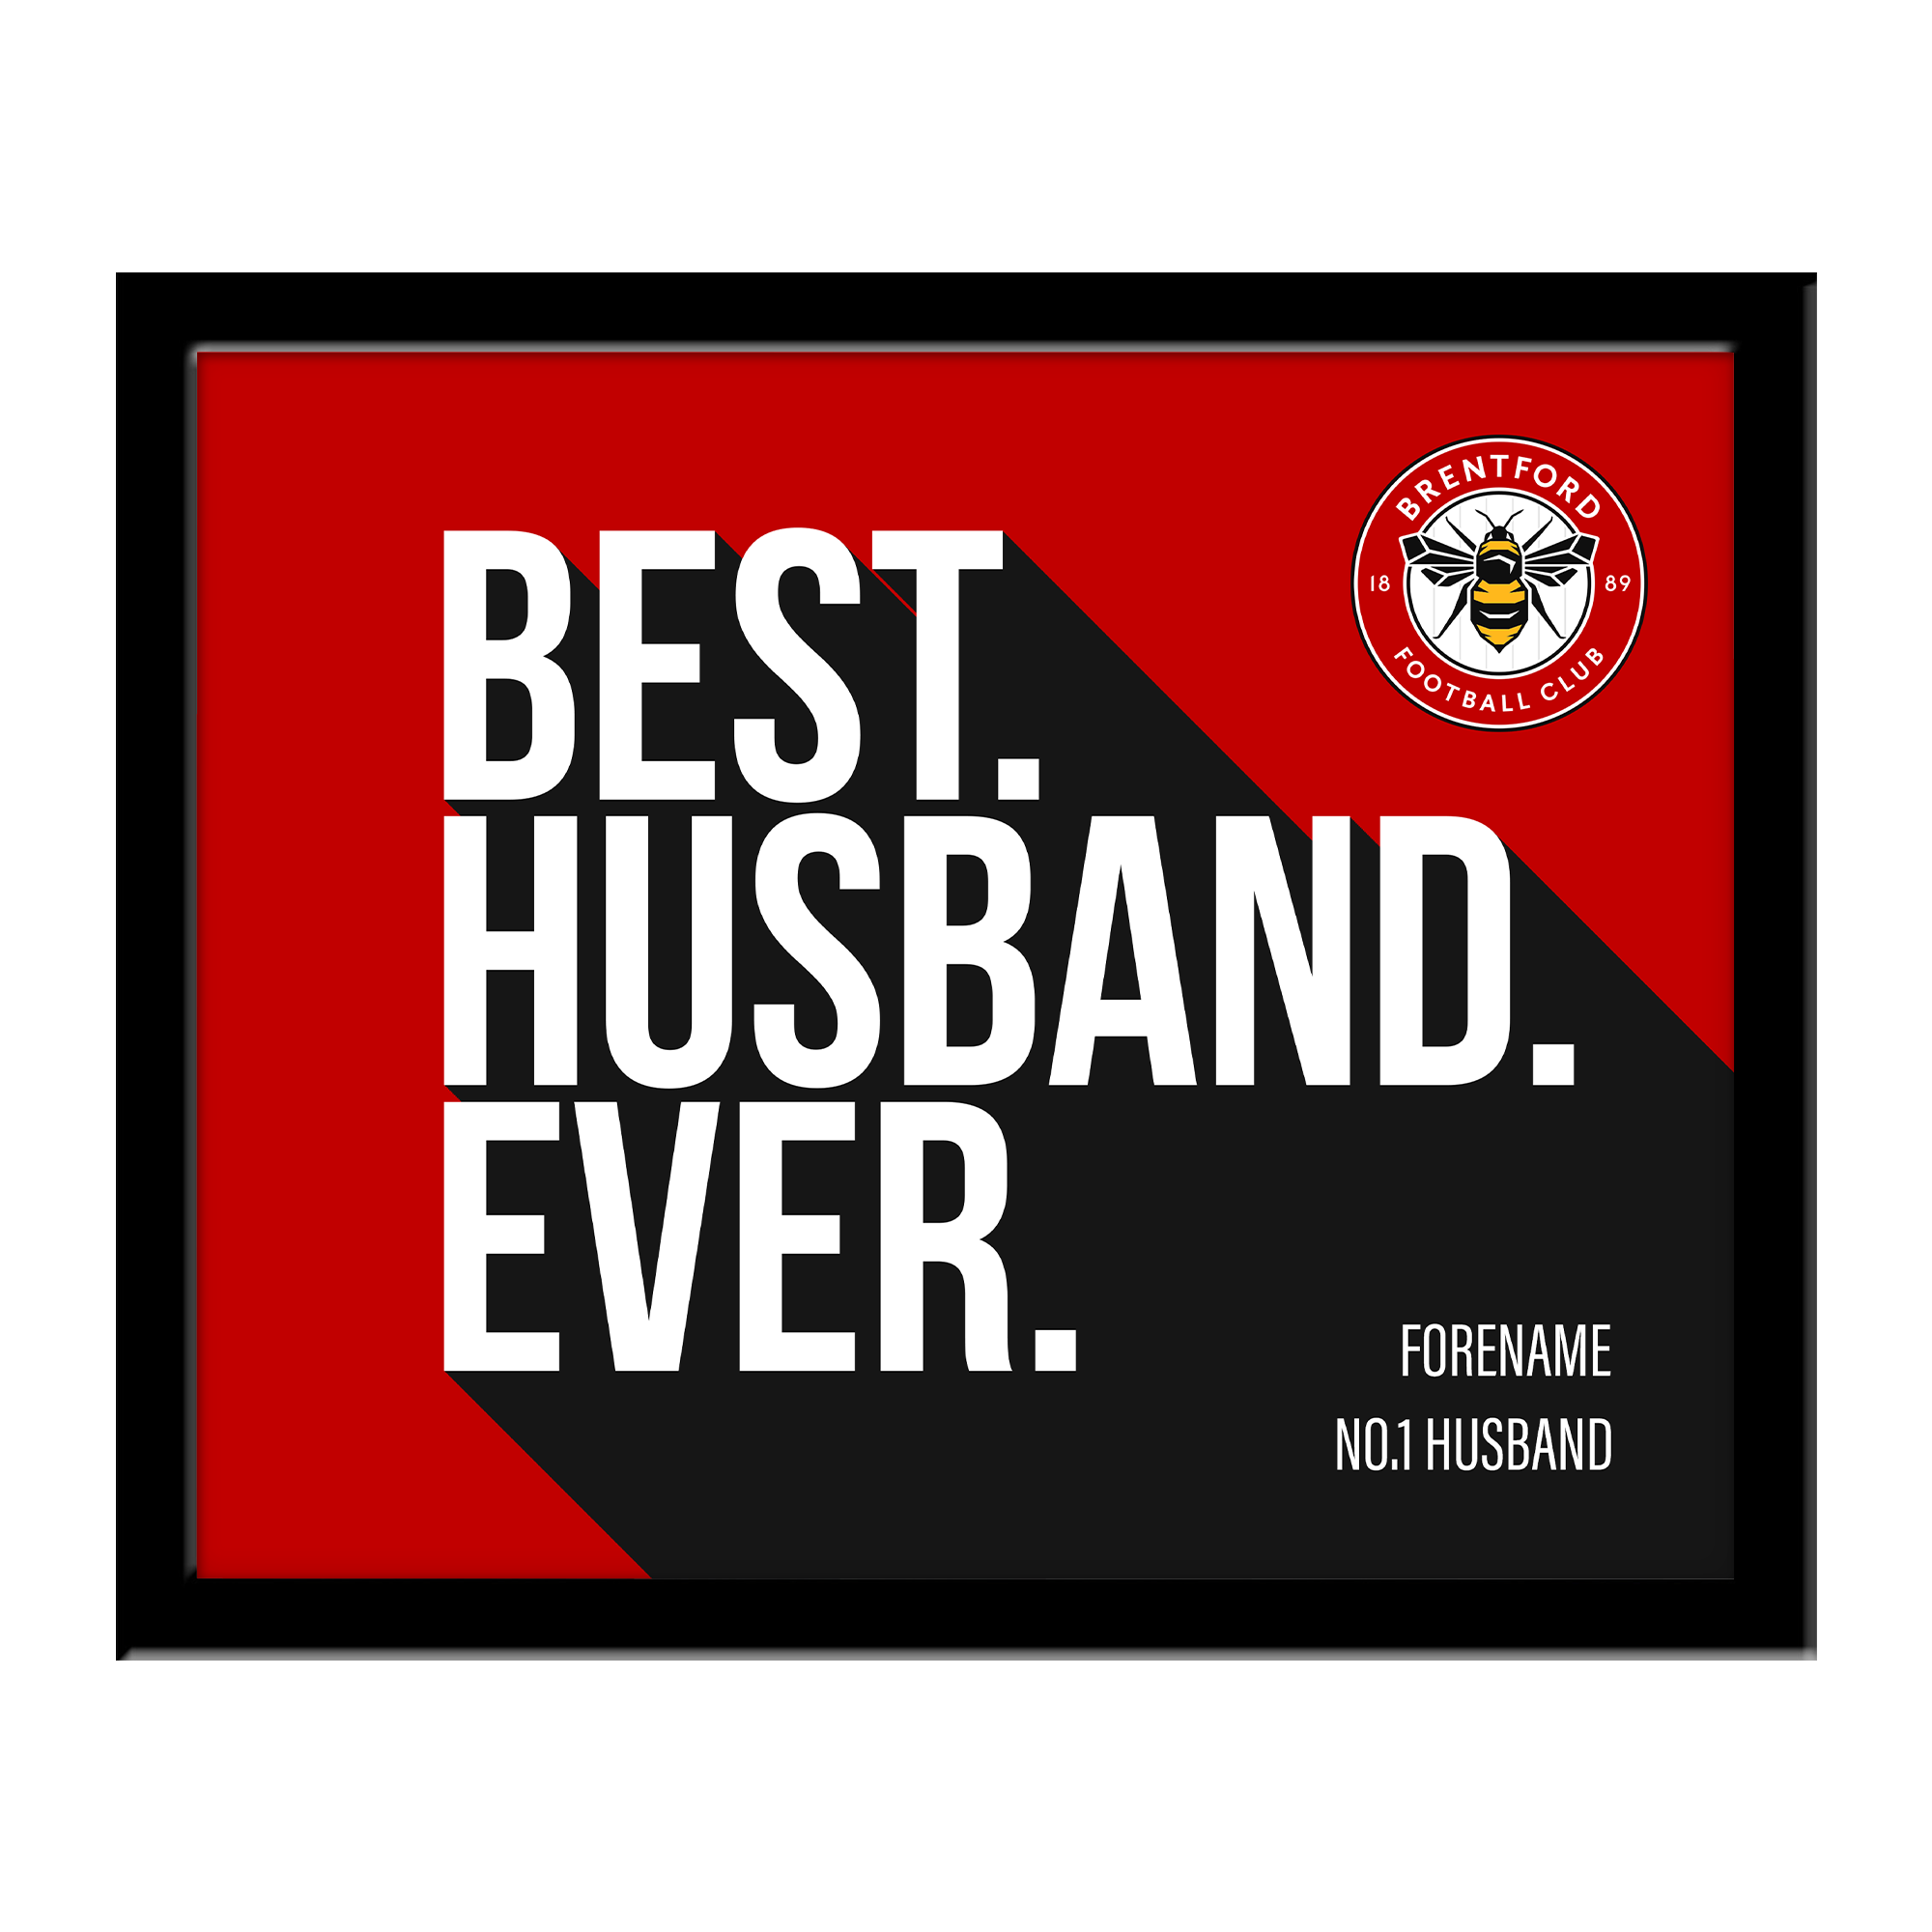 Brentford Best Husband Ever 10 x 8 Photo Framed